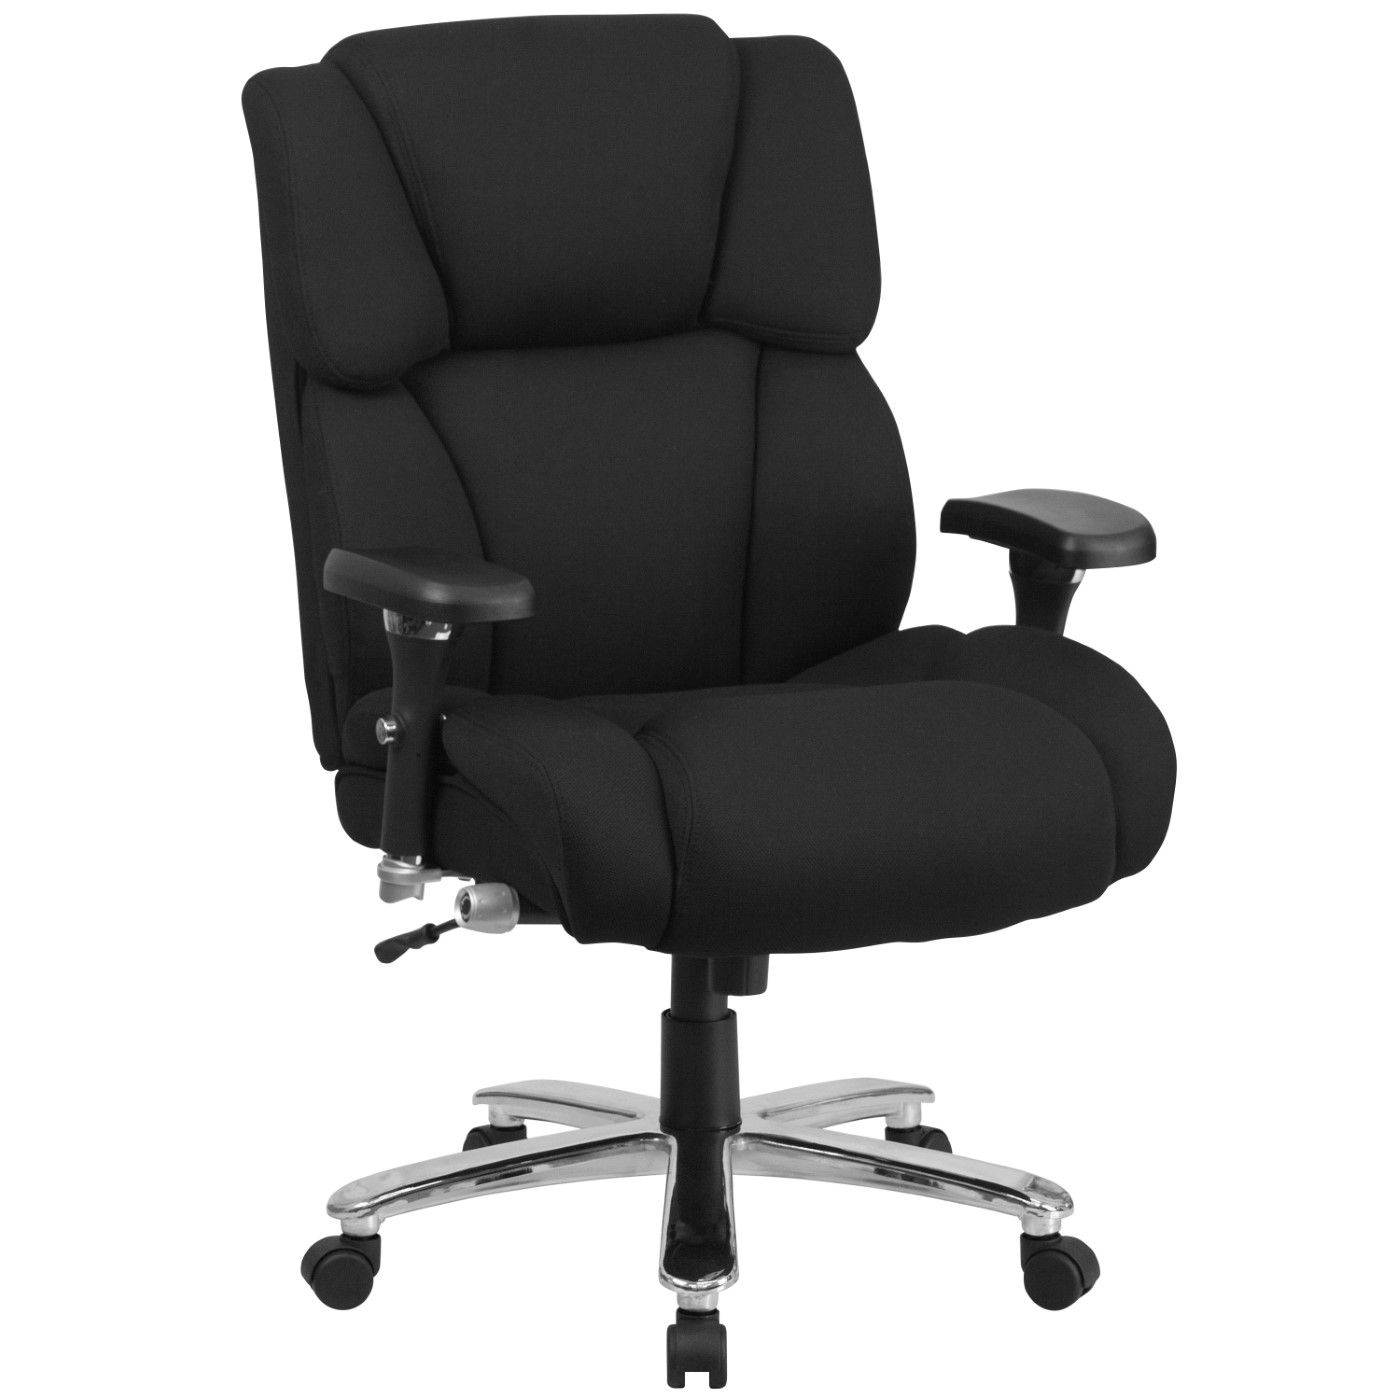 TOUGH ENOUGH Series 24/7 Intensive Use Big & Tall 400 lb. Rated Black Fabric Executive Ergonomic Office Chair with Lumbar Knob